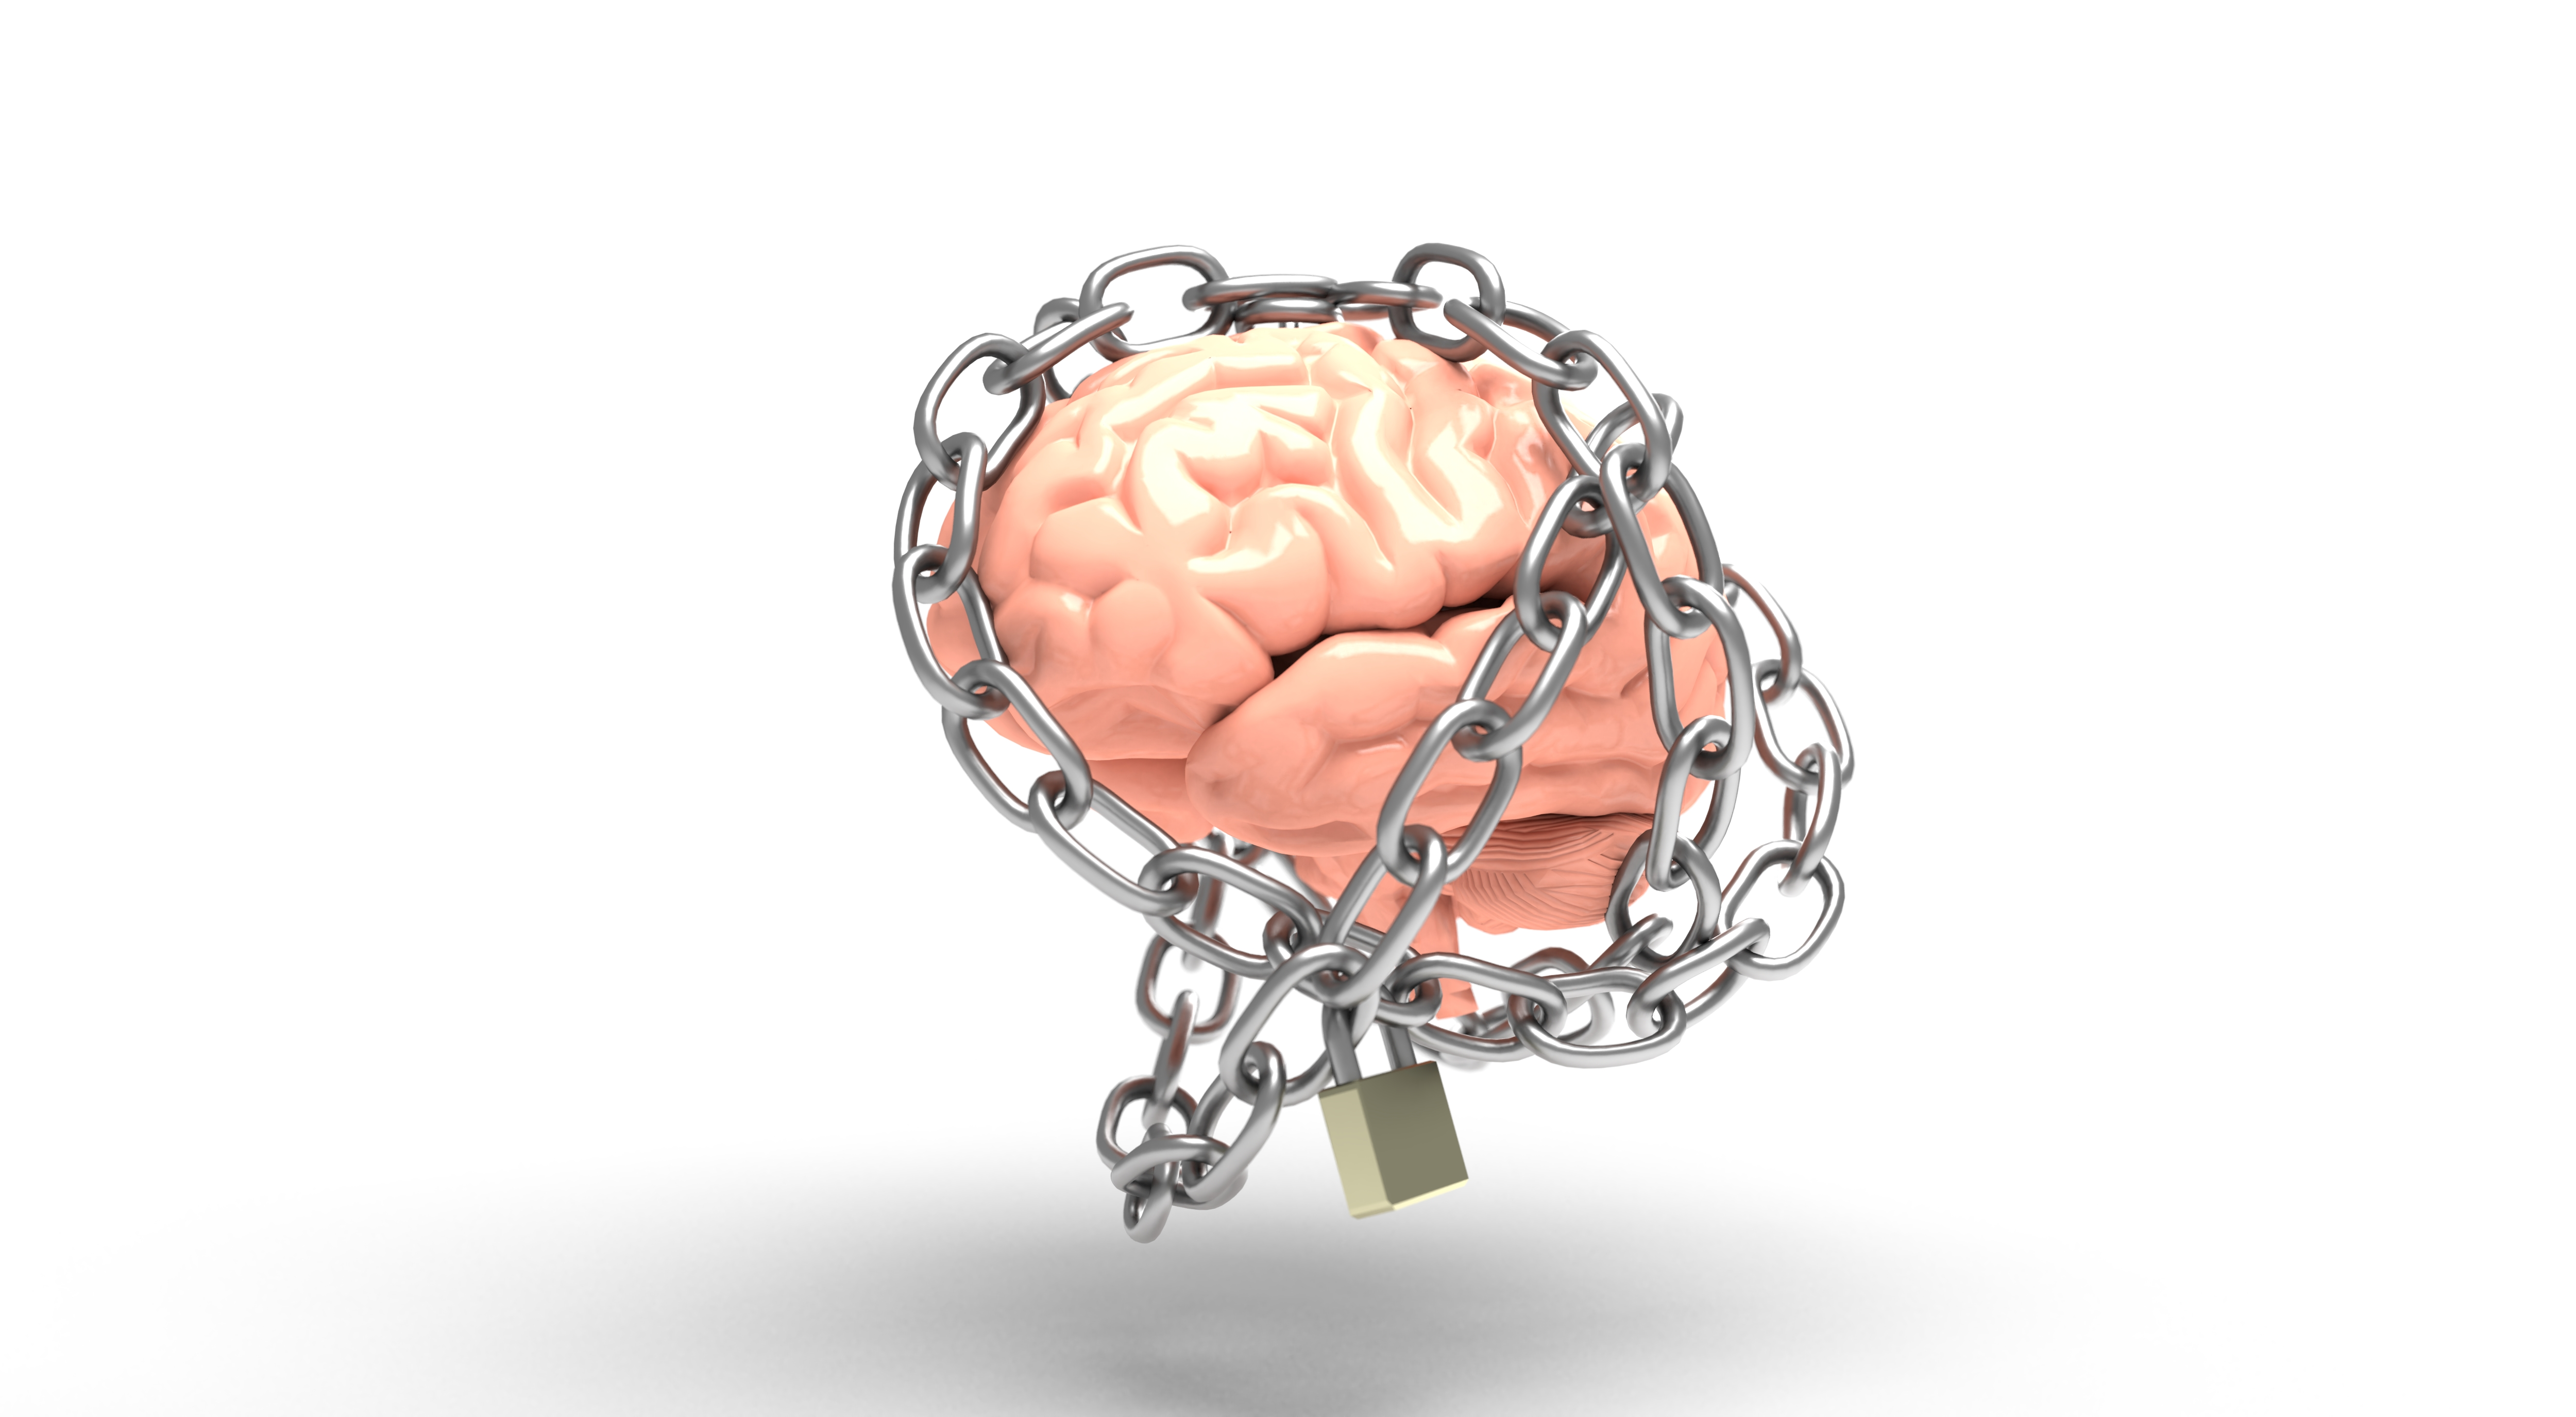 File:Free 3D Illustration Of A Mental Health Conceptual Image By ...